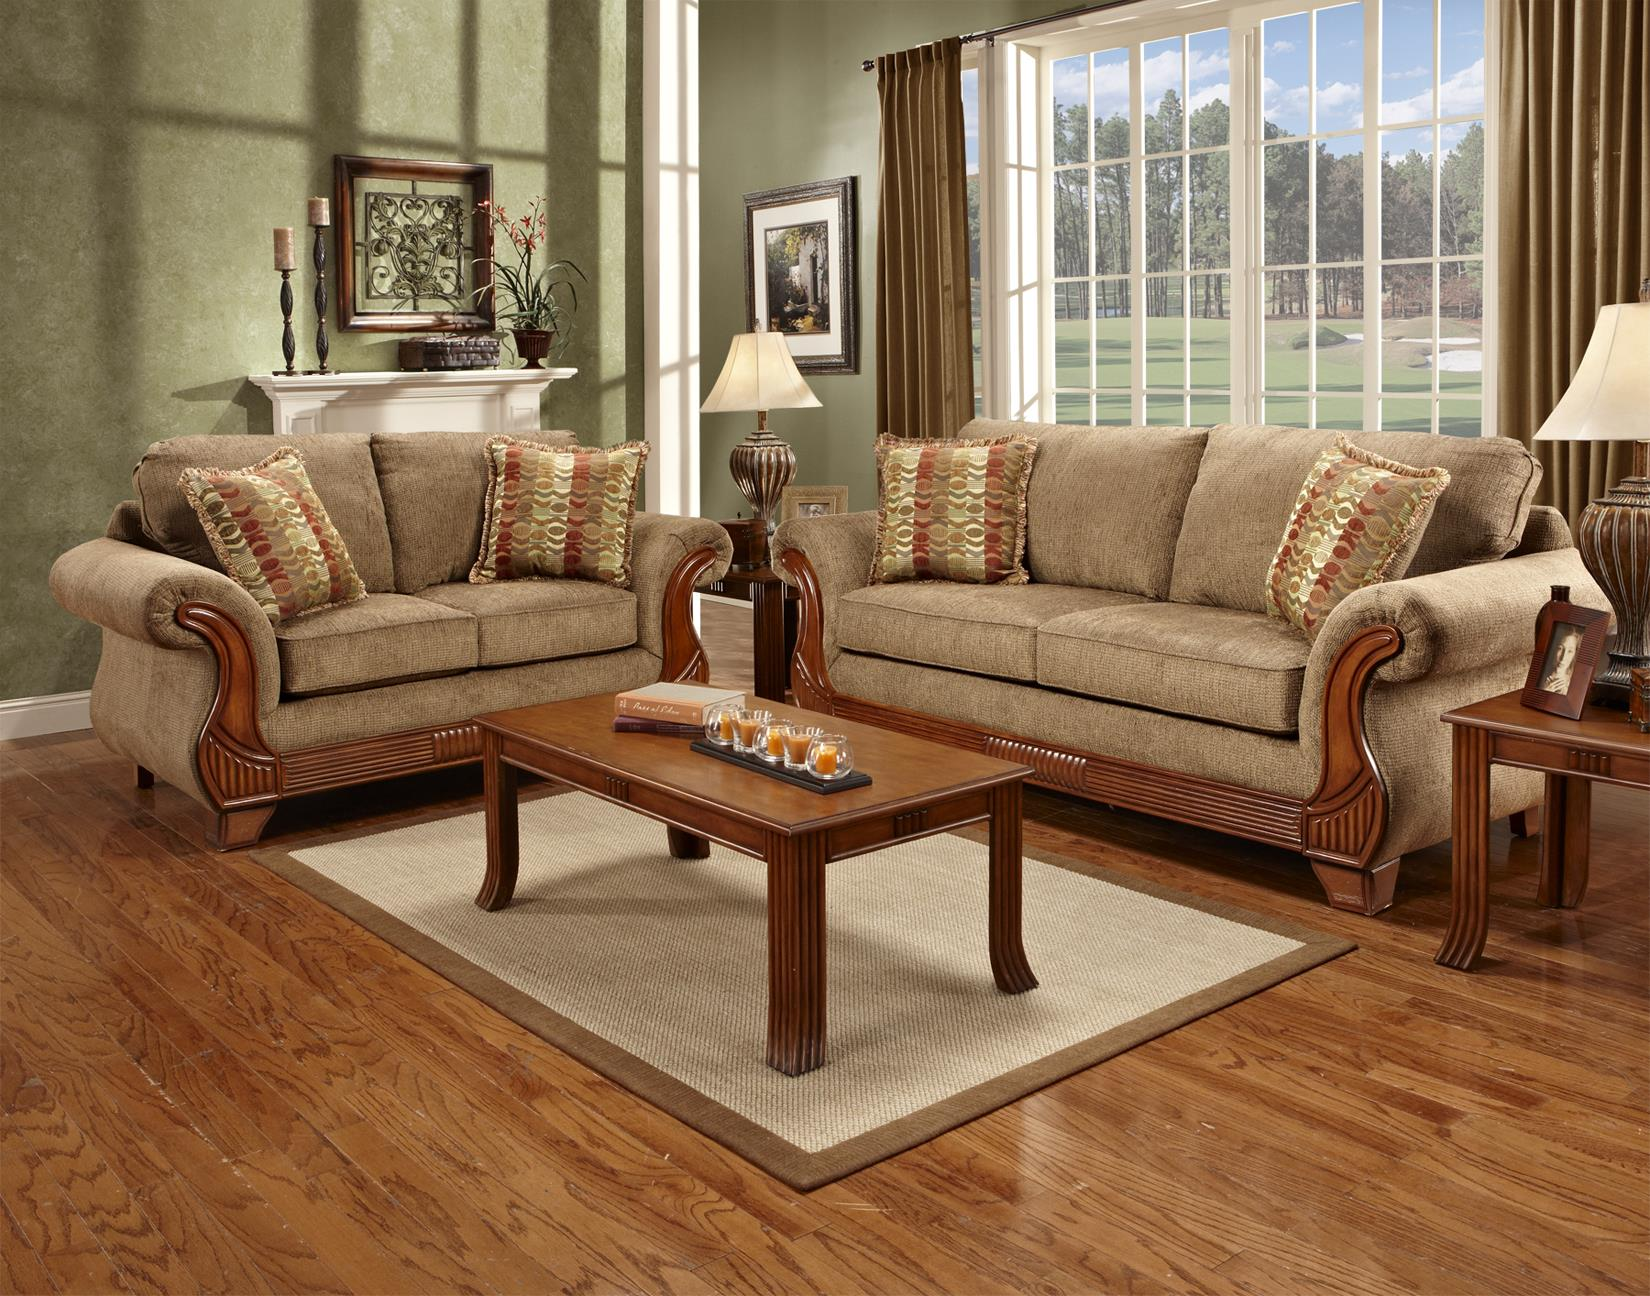 8400 Stationary Living Room Group by Affordable Furniture at Wilcox Furniture